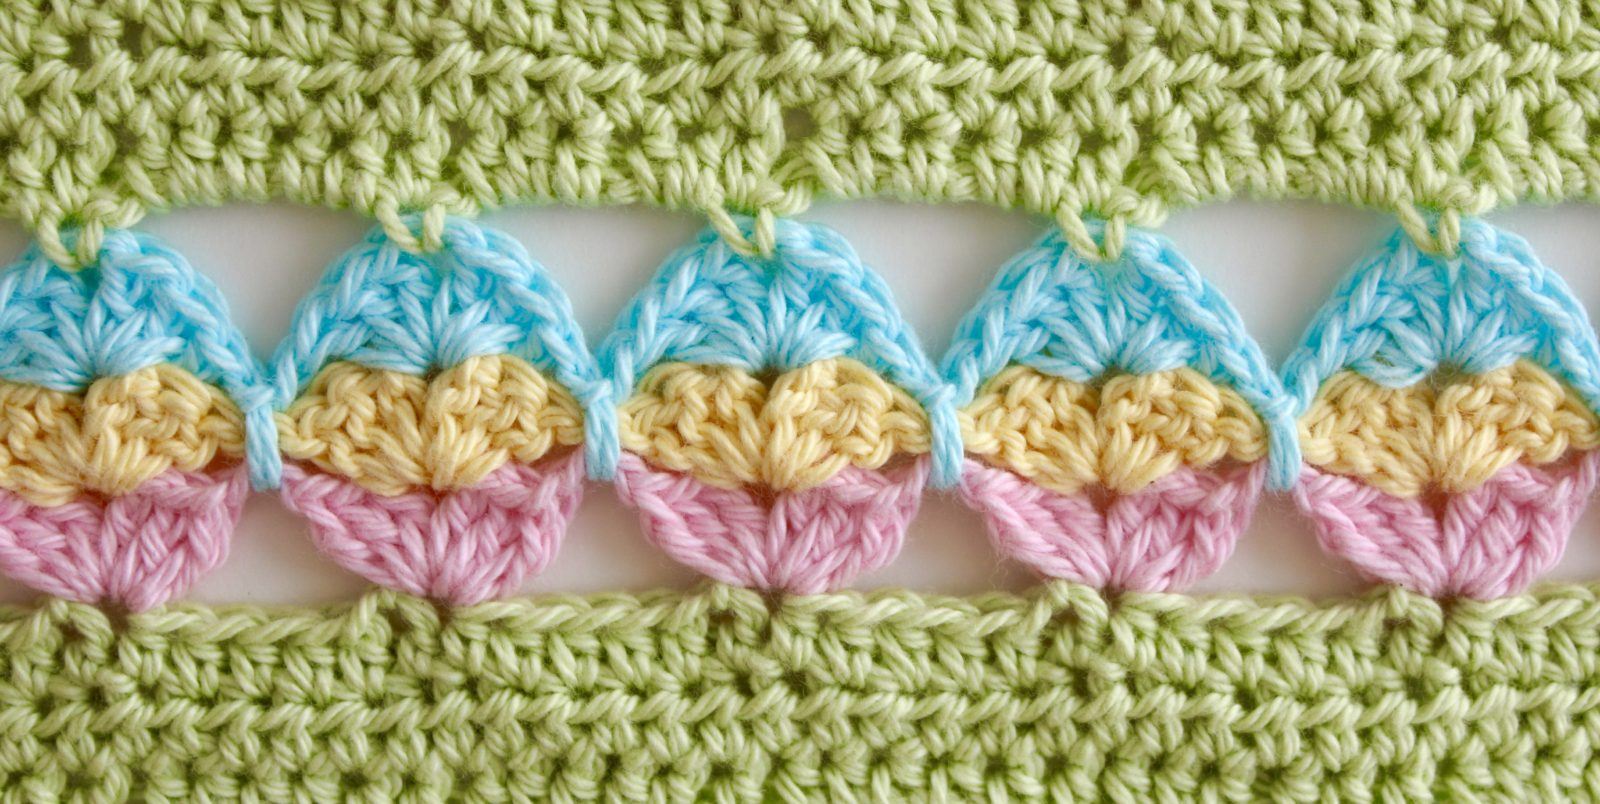 Egg Hunt blanket closeup.